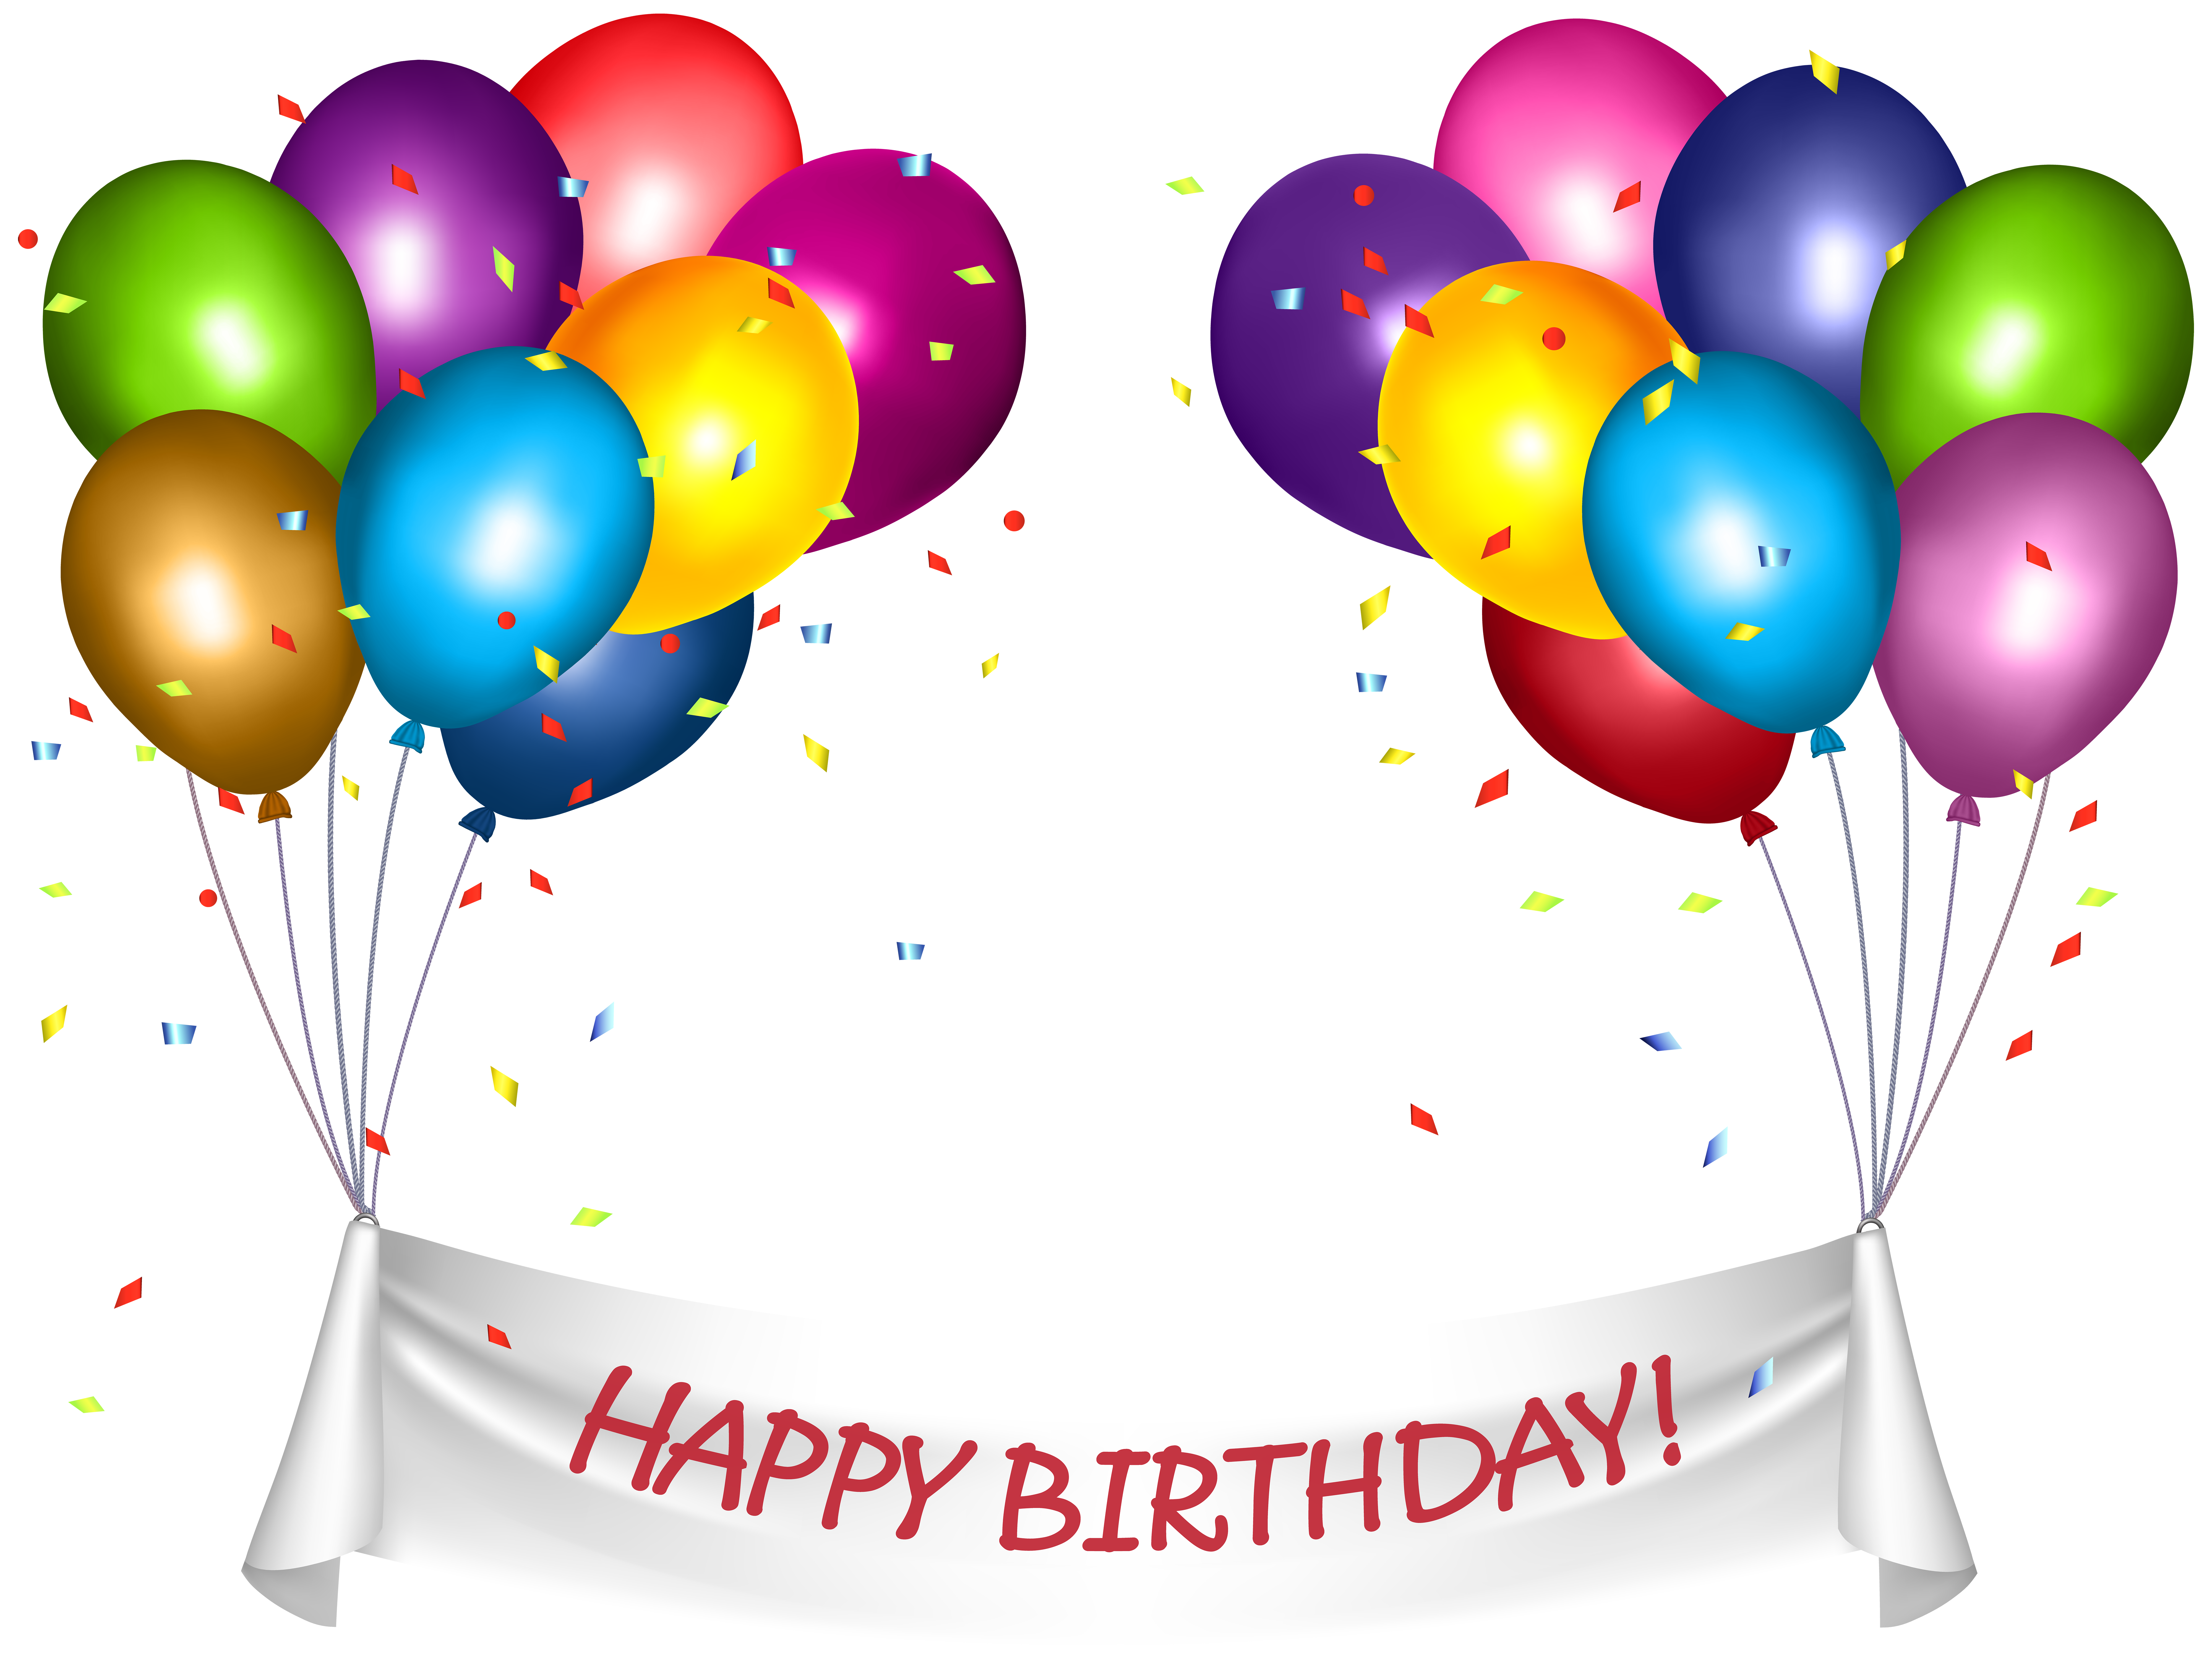 Transparent Happy Birthday Banner and Baloons PNG Clip Art.